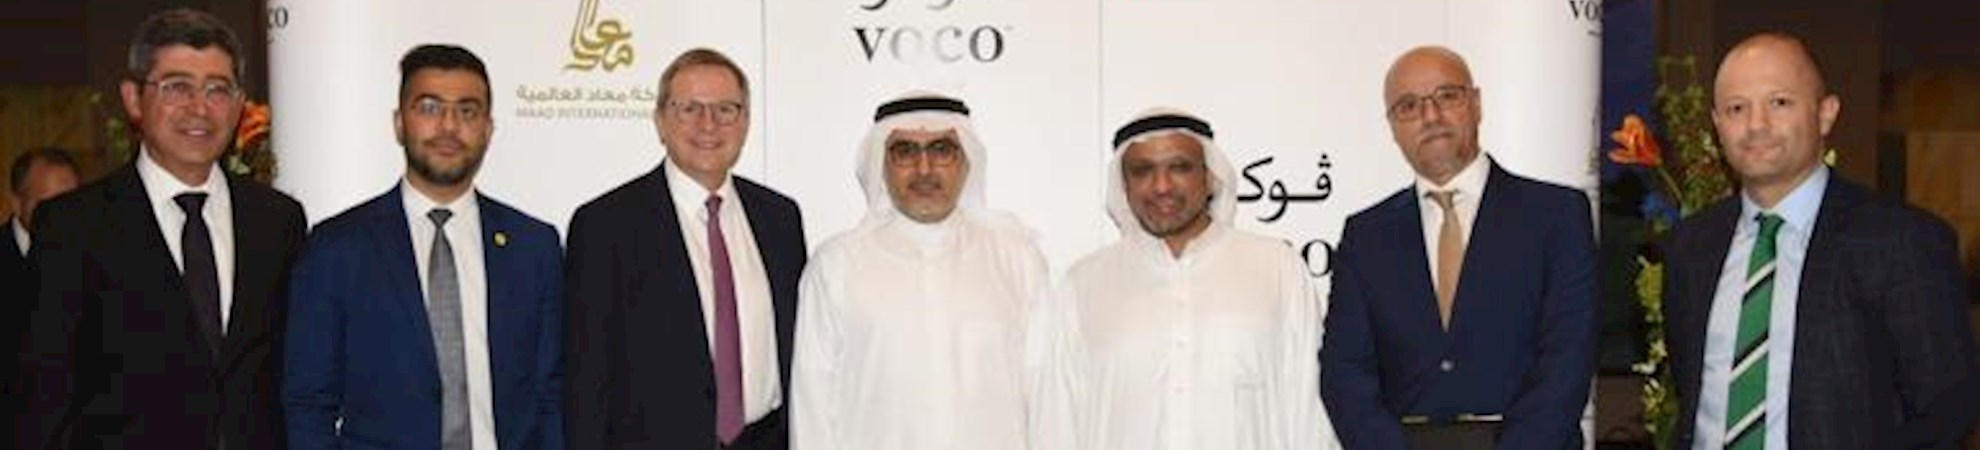 IHG signs world's largest voco with Maad International in Saudi Arabia